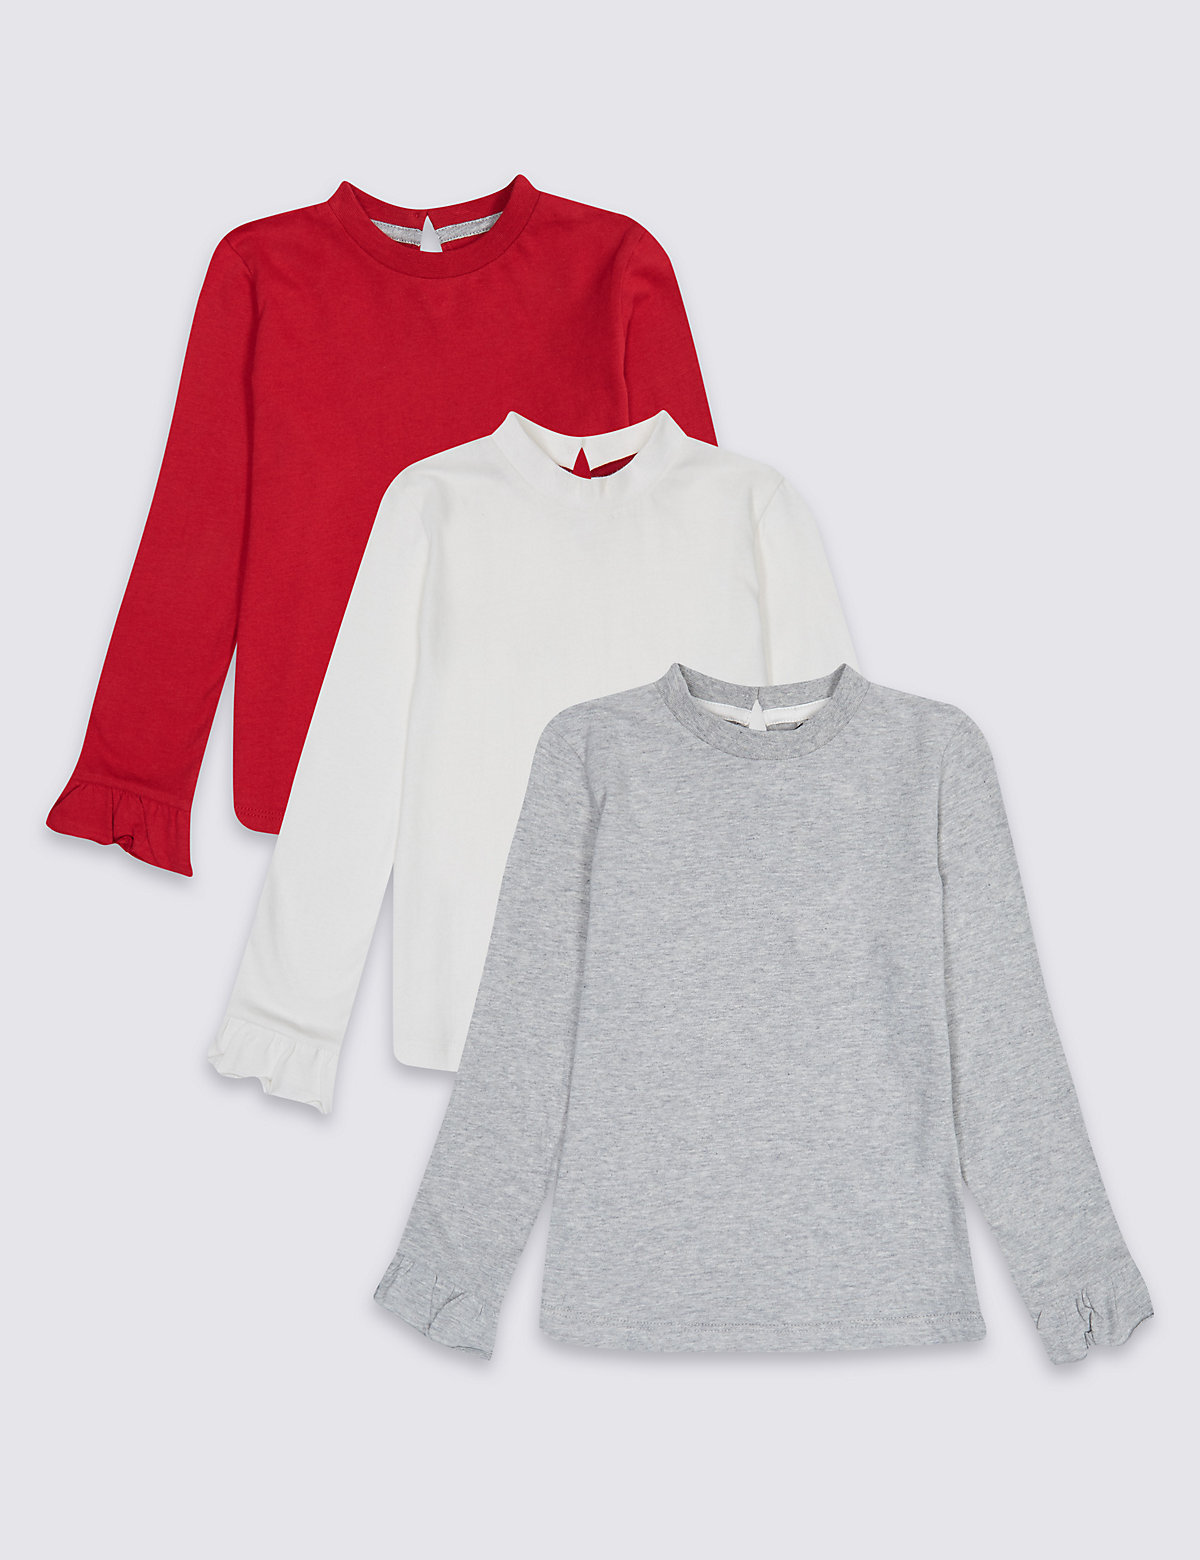 3 Pack Pure Cotton Tops (3 Months - 5 Years)